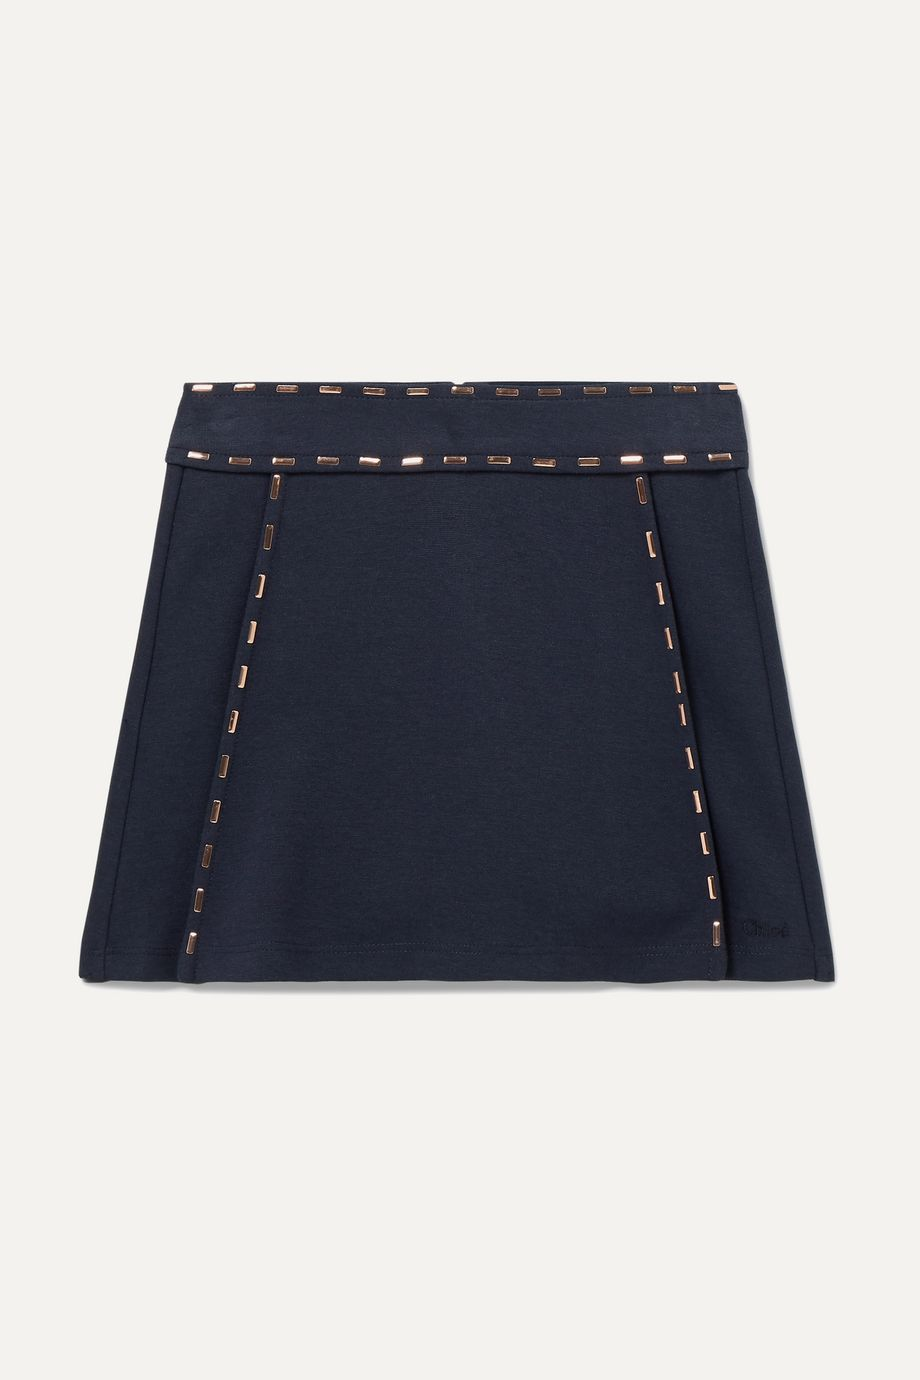 Chloé Kids Ages 2 - 5 embellished stretch-jersey skirt